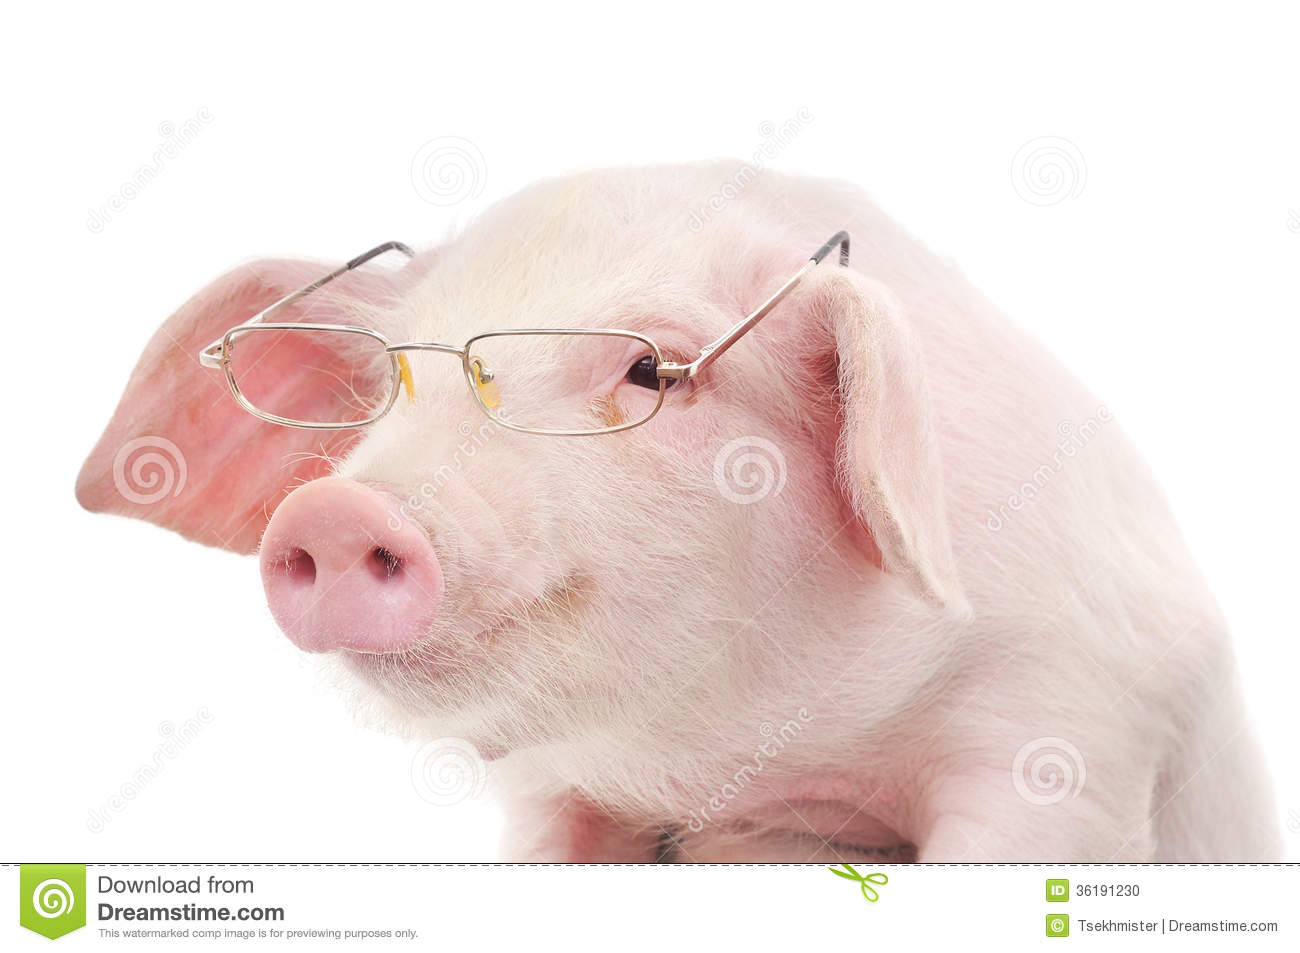 Portrait Of A Pig In Glasses Stock Photo - Image: 36191230